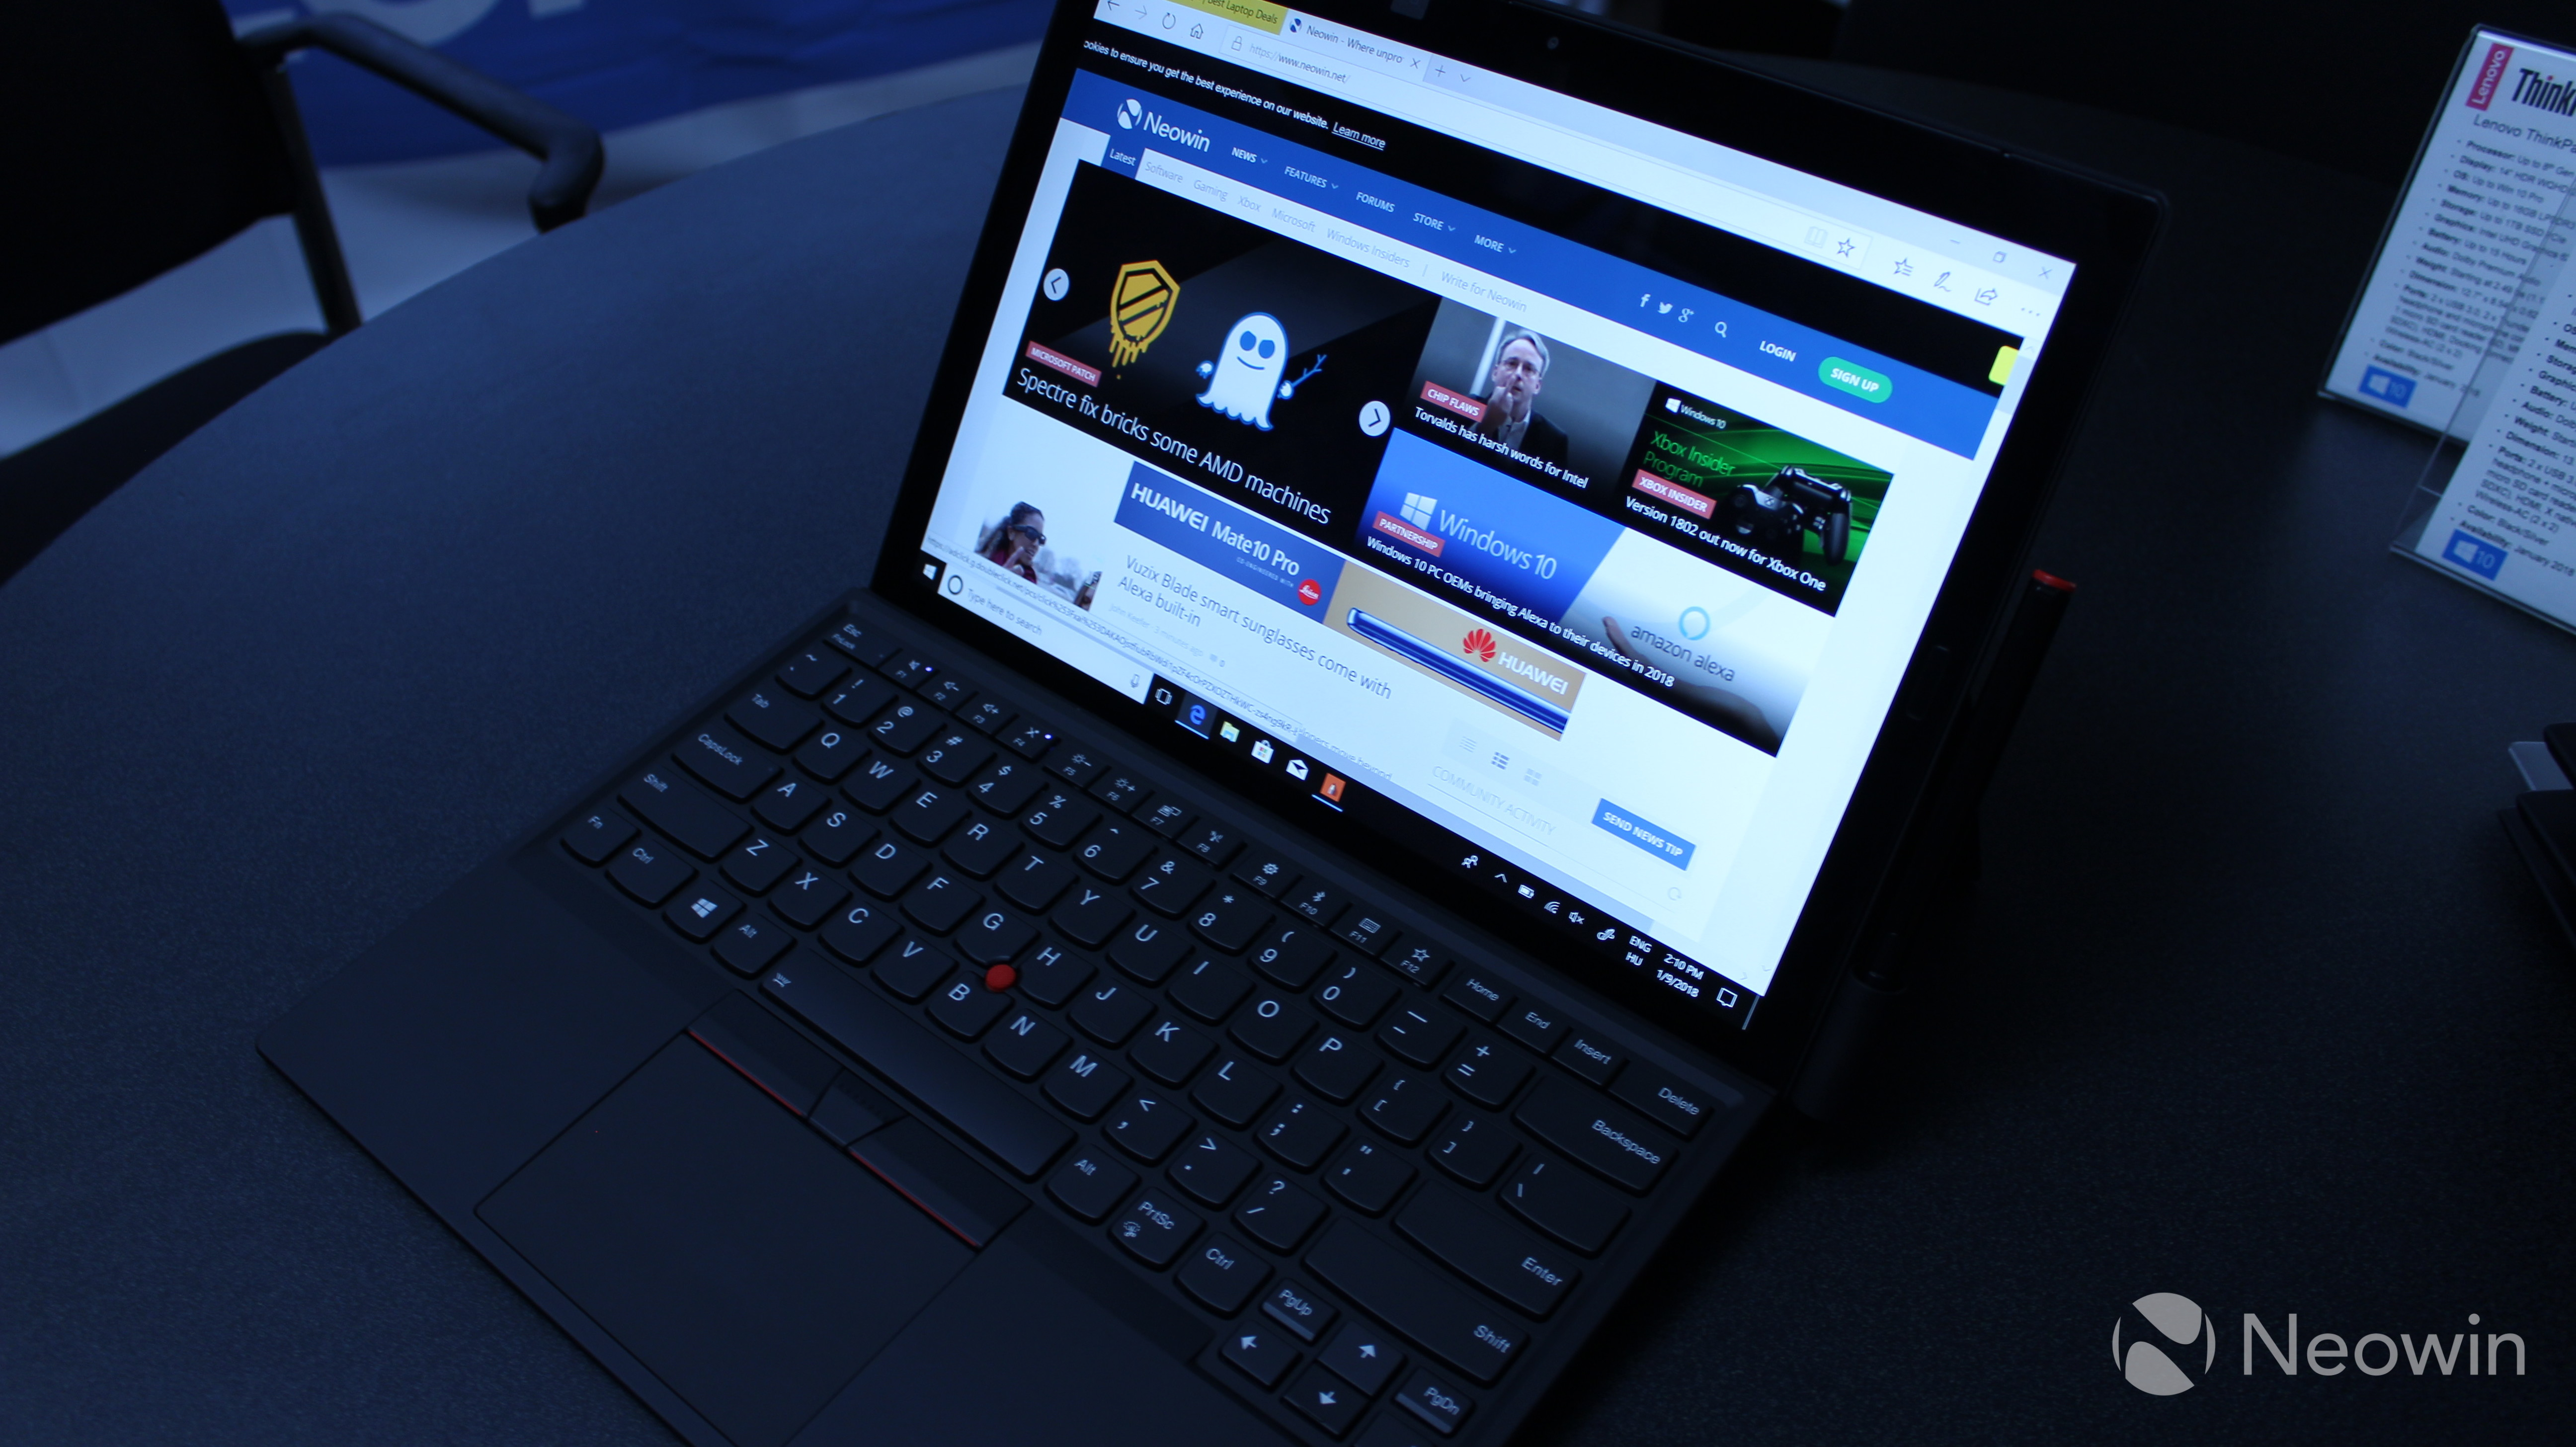 Hands on with Lenovo's redesigned ThinkPad X1 Tablet - Neowin